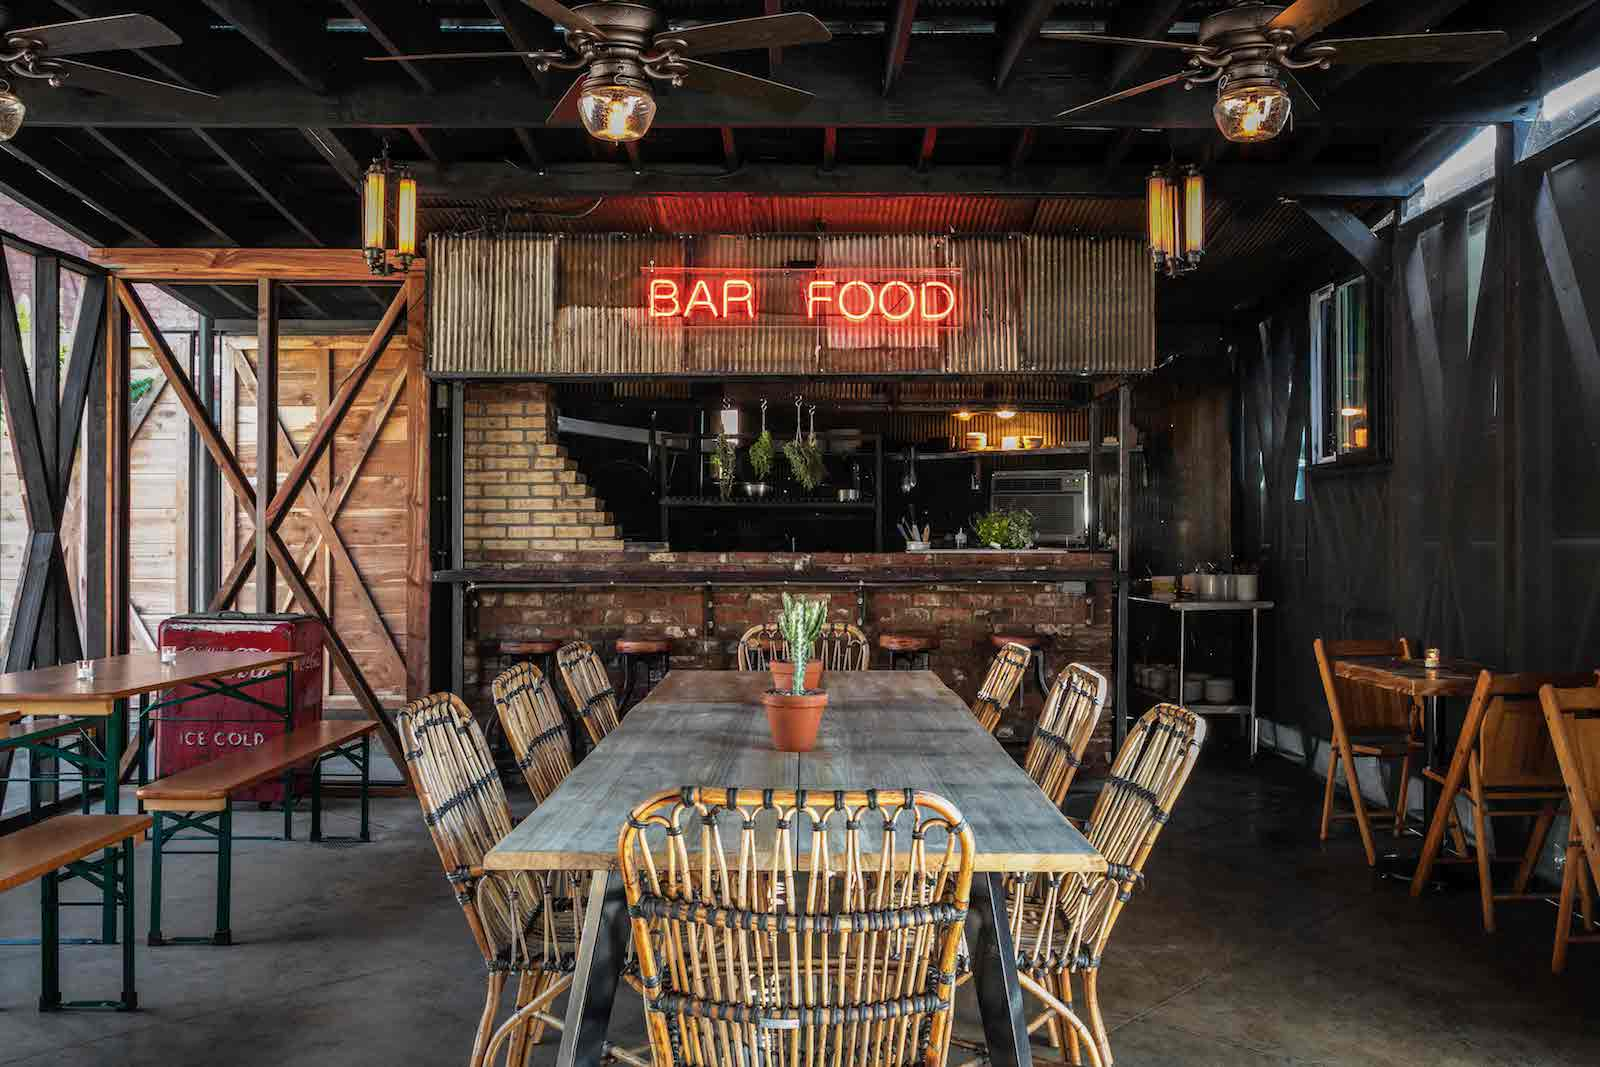 View of the main dining area of Urban Cowboy's Public House Kitchen and Bar. Woven chairs make up the area in the center, with wooden benches and tables in the areas beside.